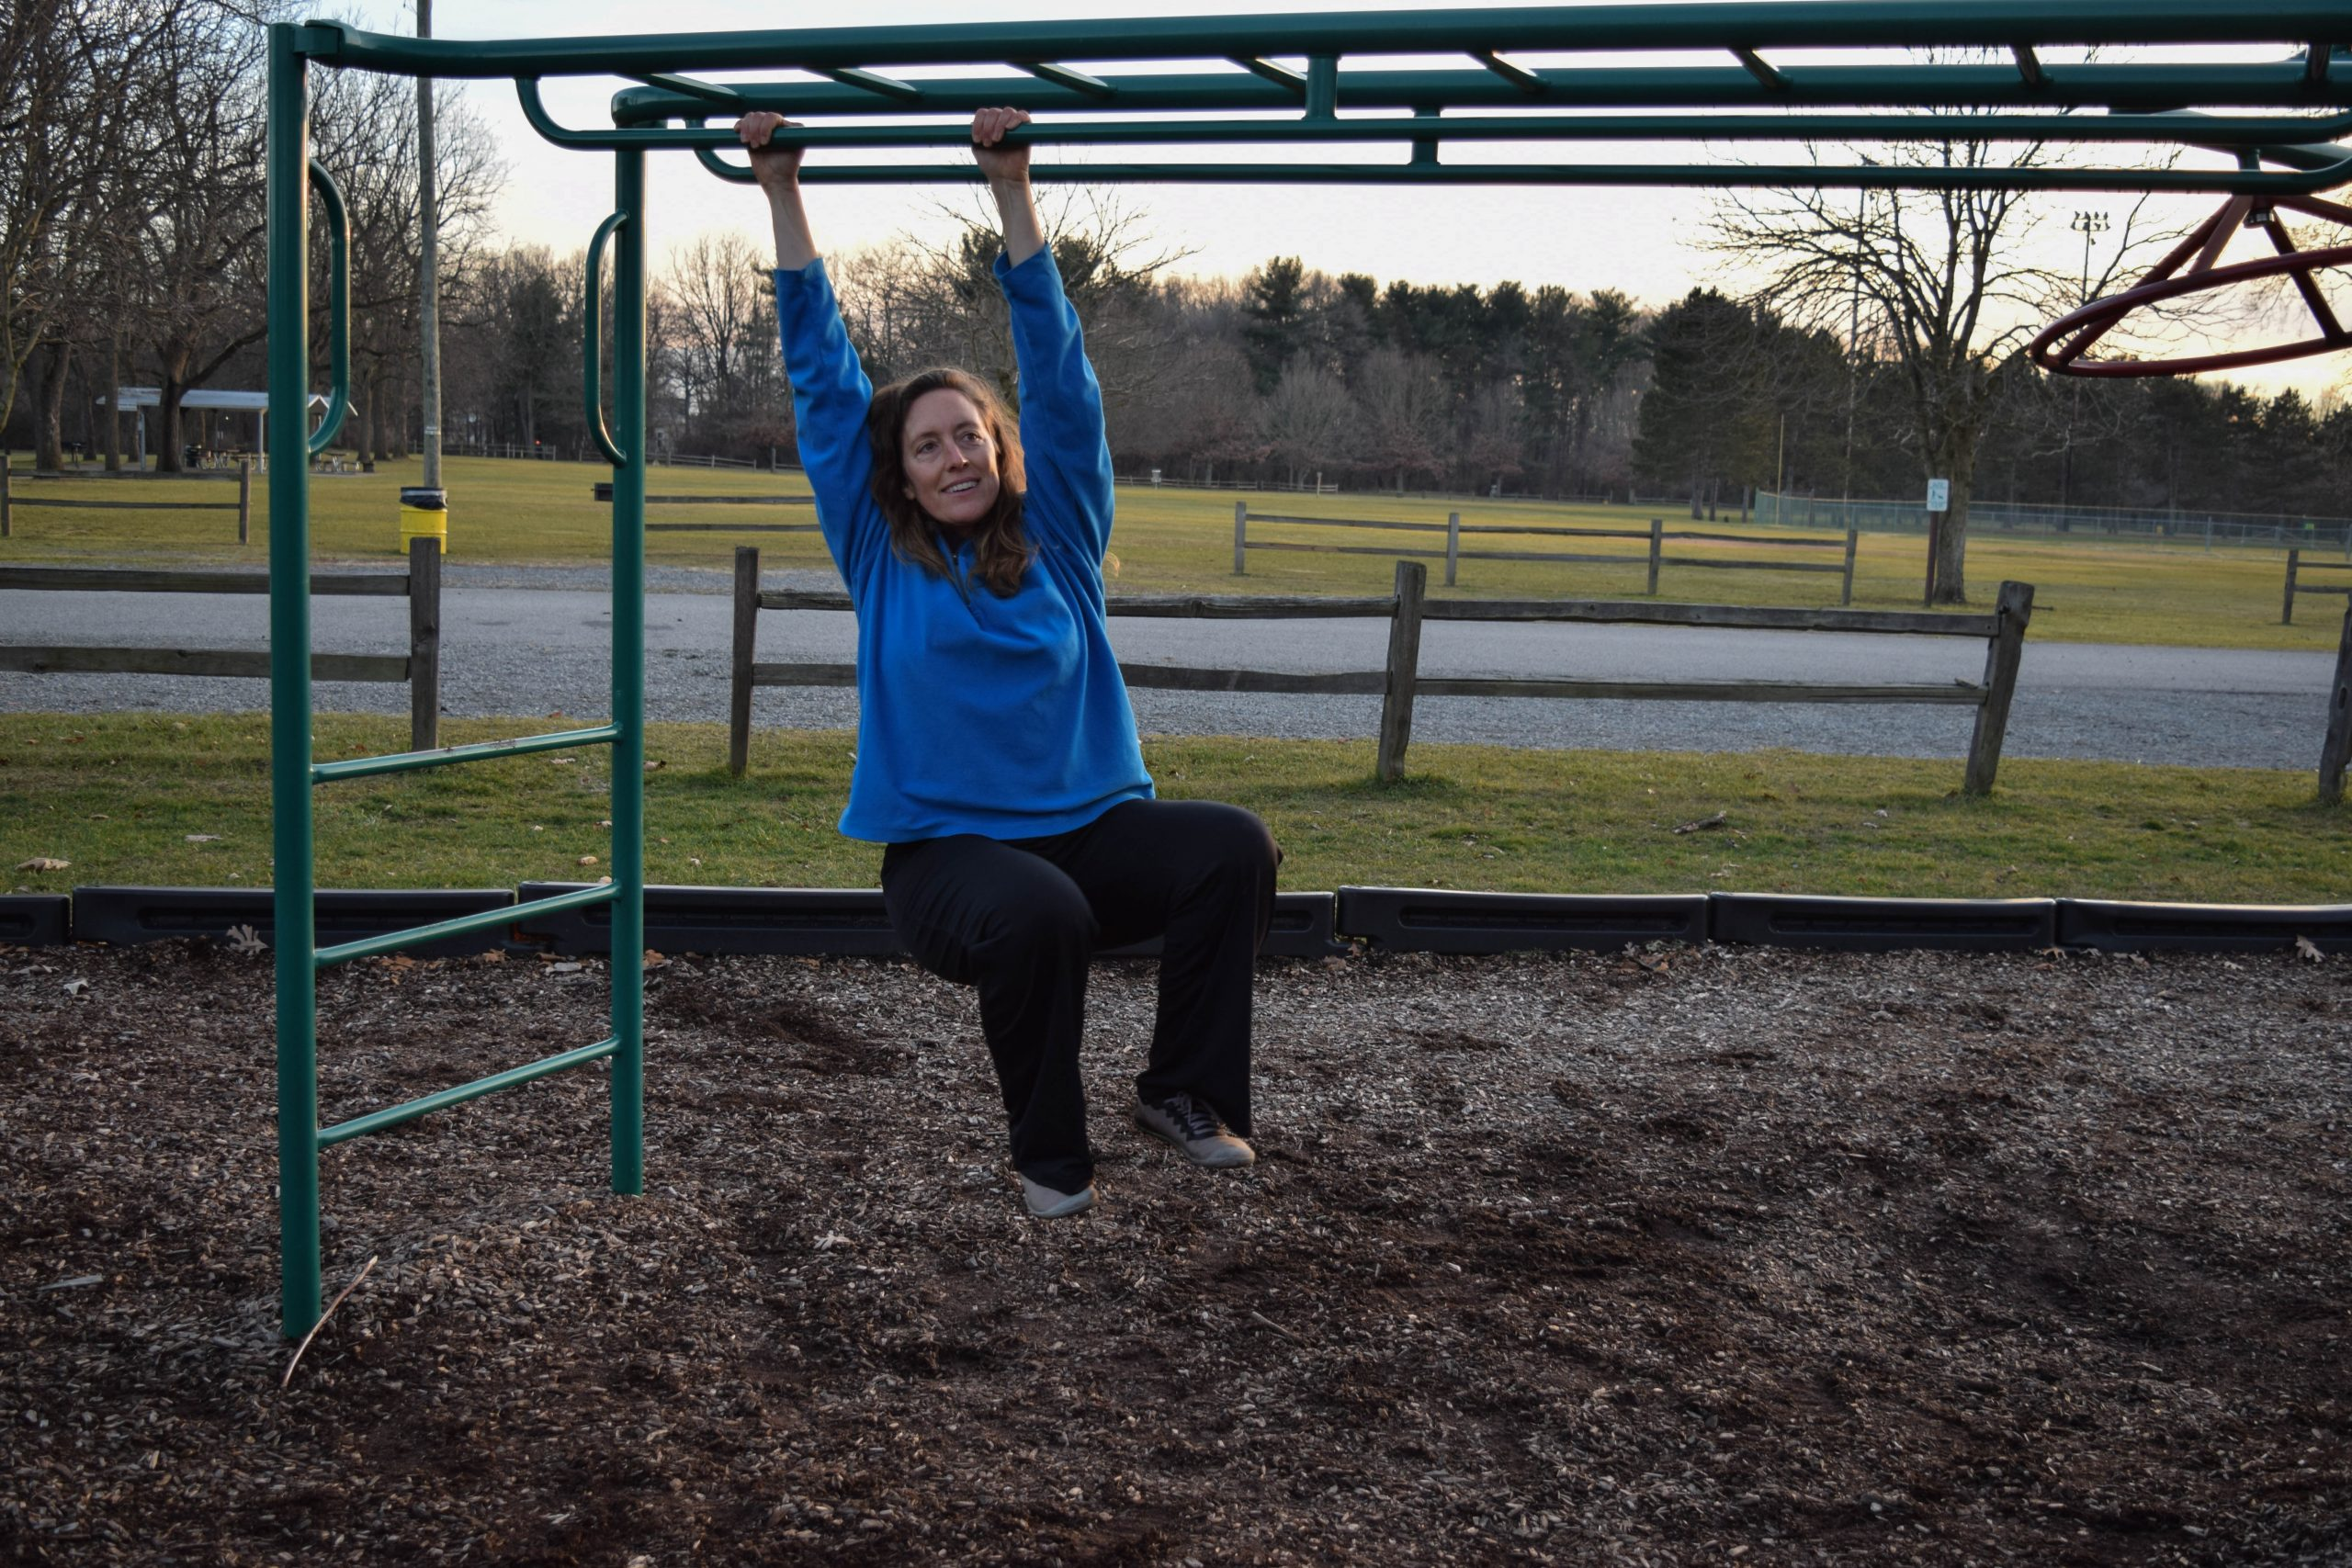 Linda hanging on the monkey bars